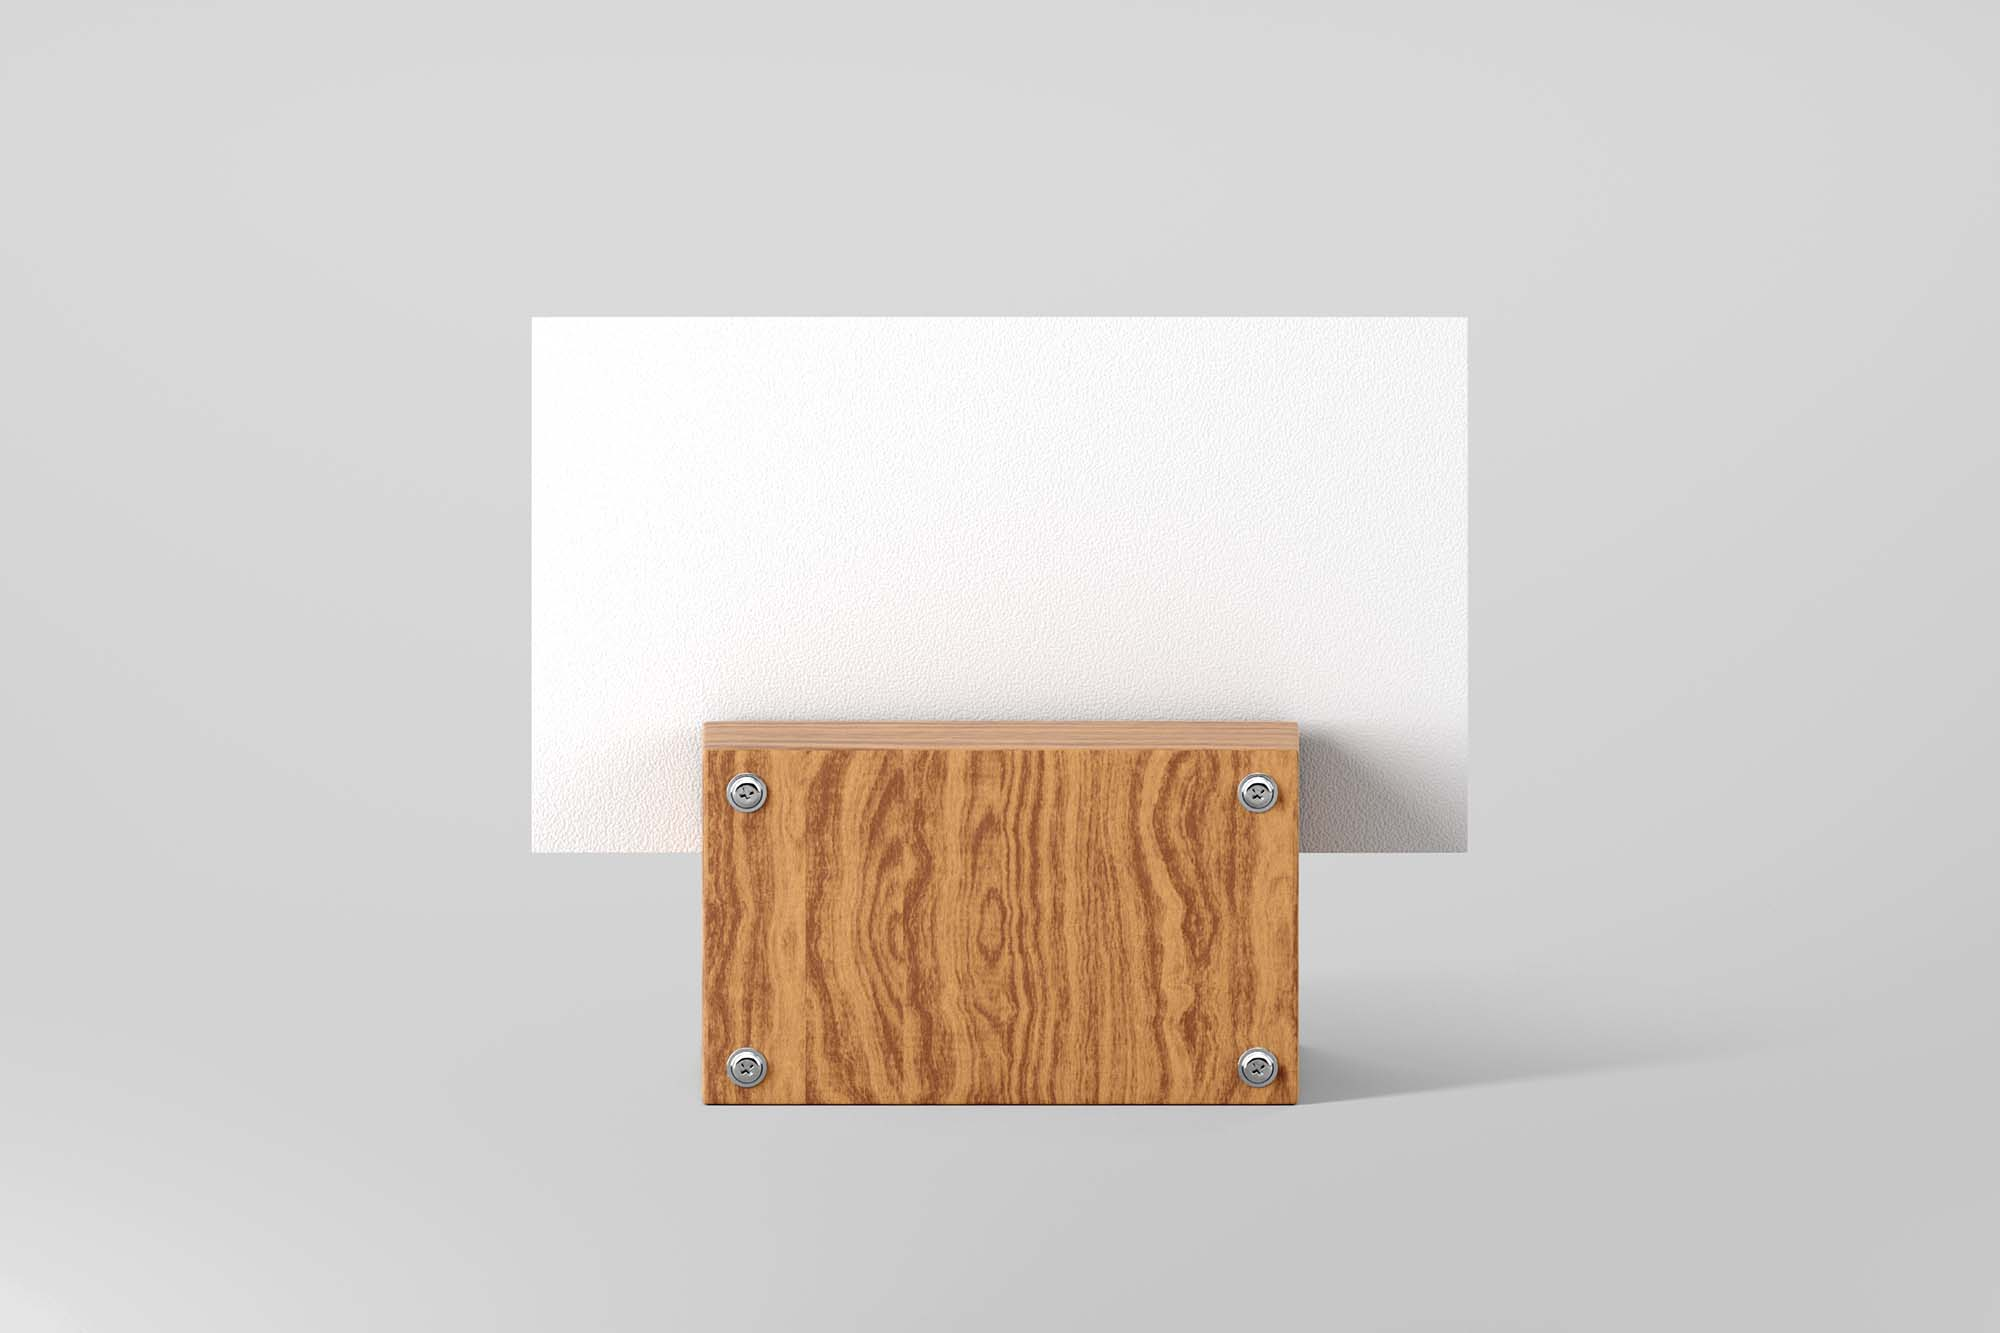 Business Card with Wooden Support Mockup 2